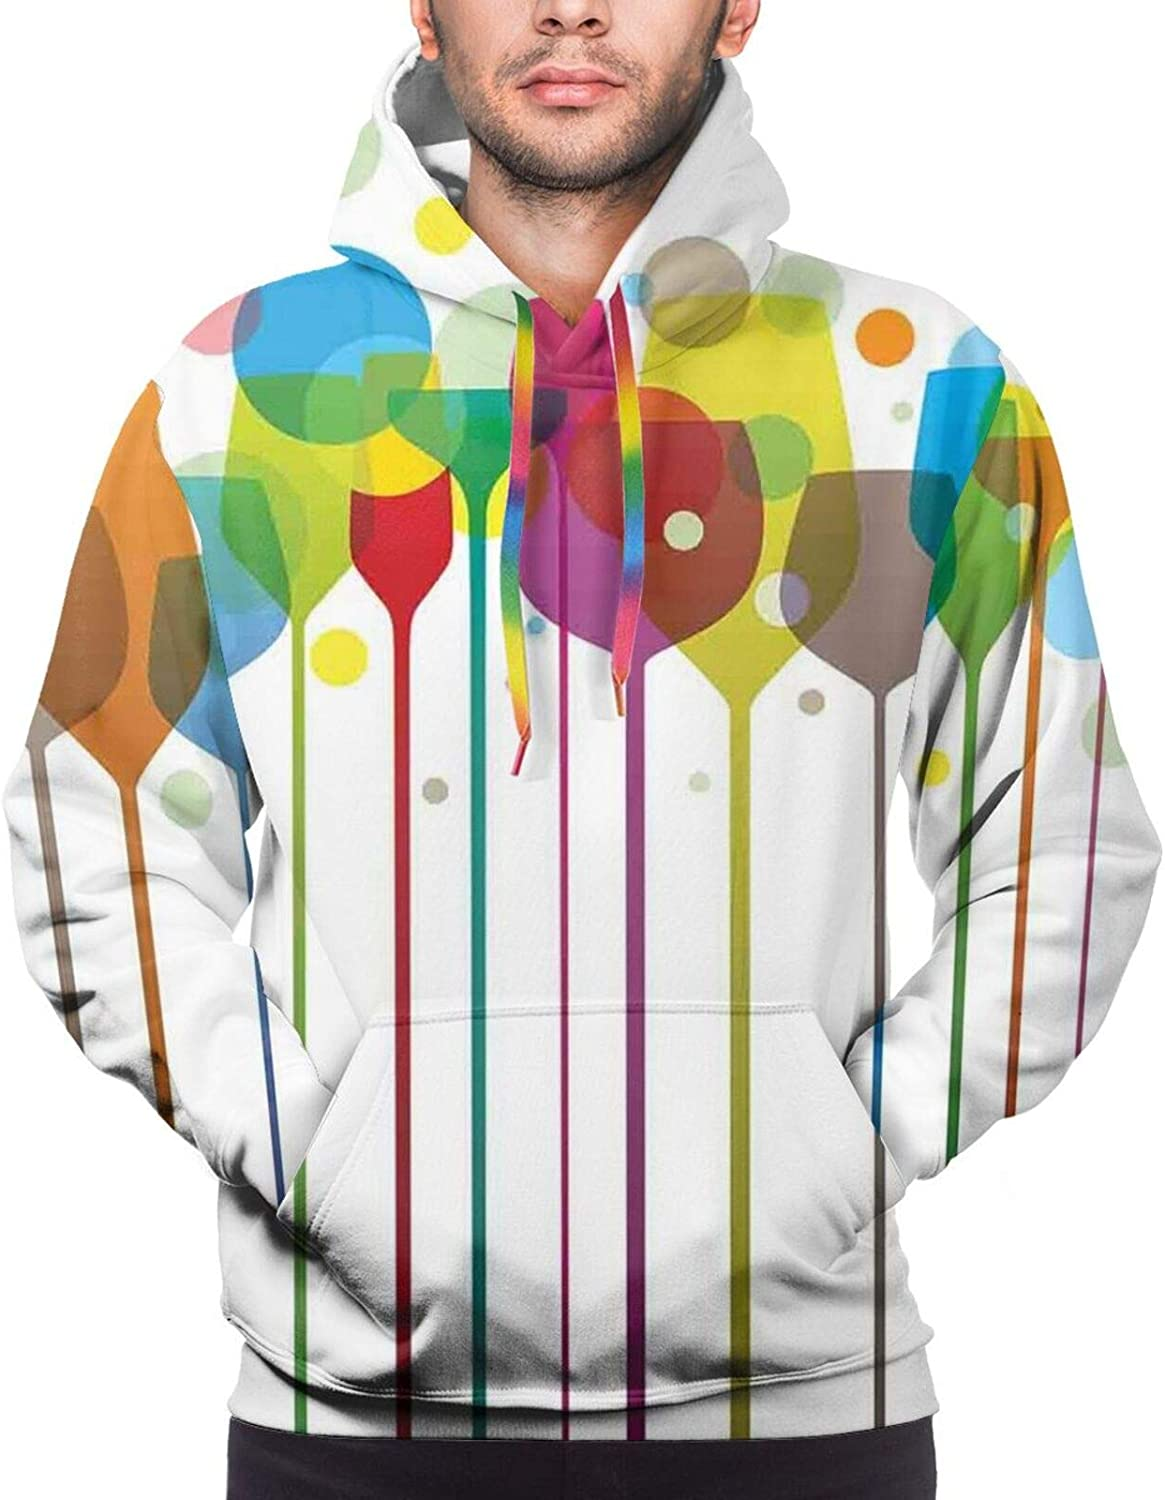 TENJONE Men's Hoodies Sweatshirts,Colorful Stripes with Sunflowers and Wheat Farm House Themed Abstract Image